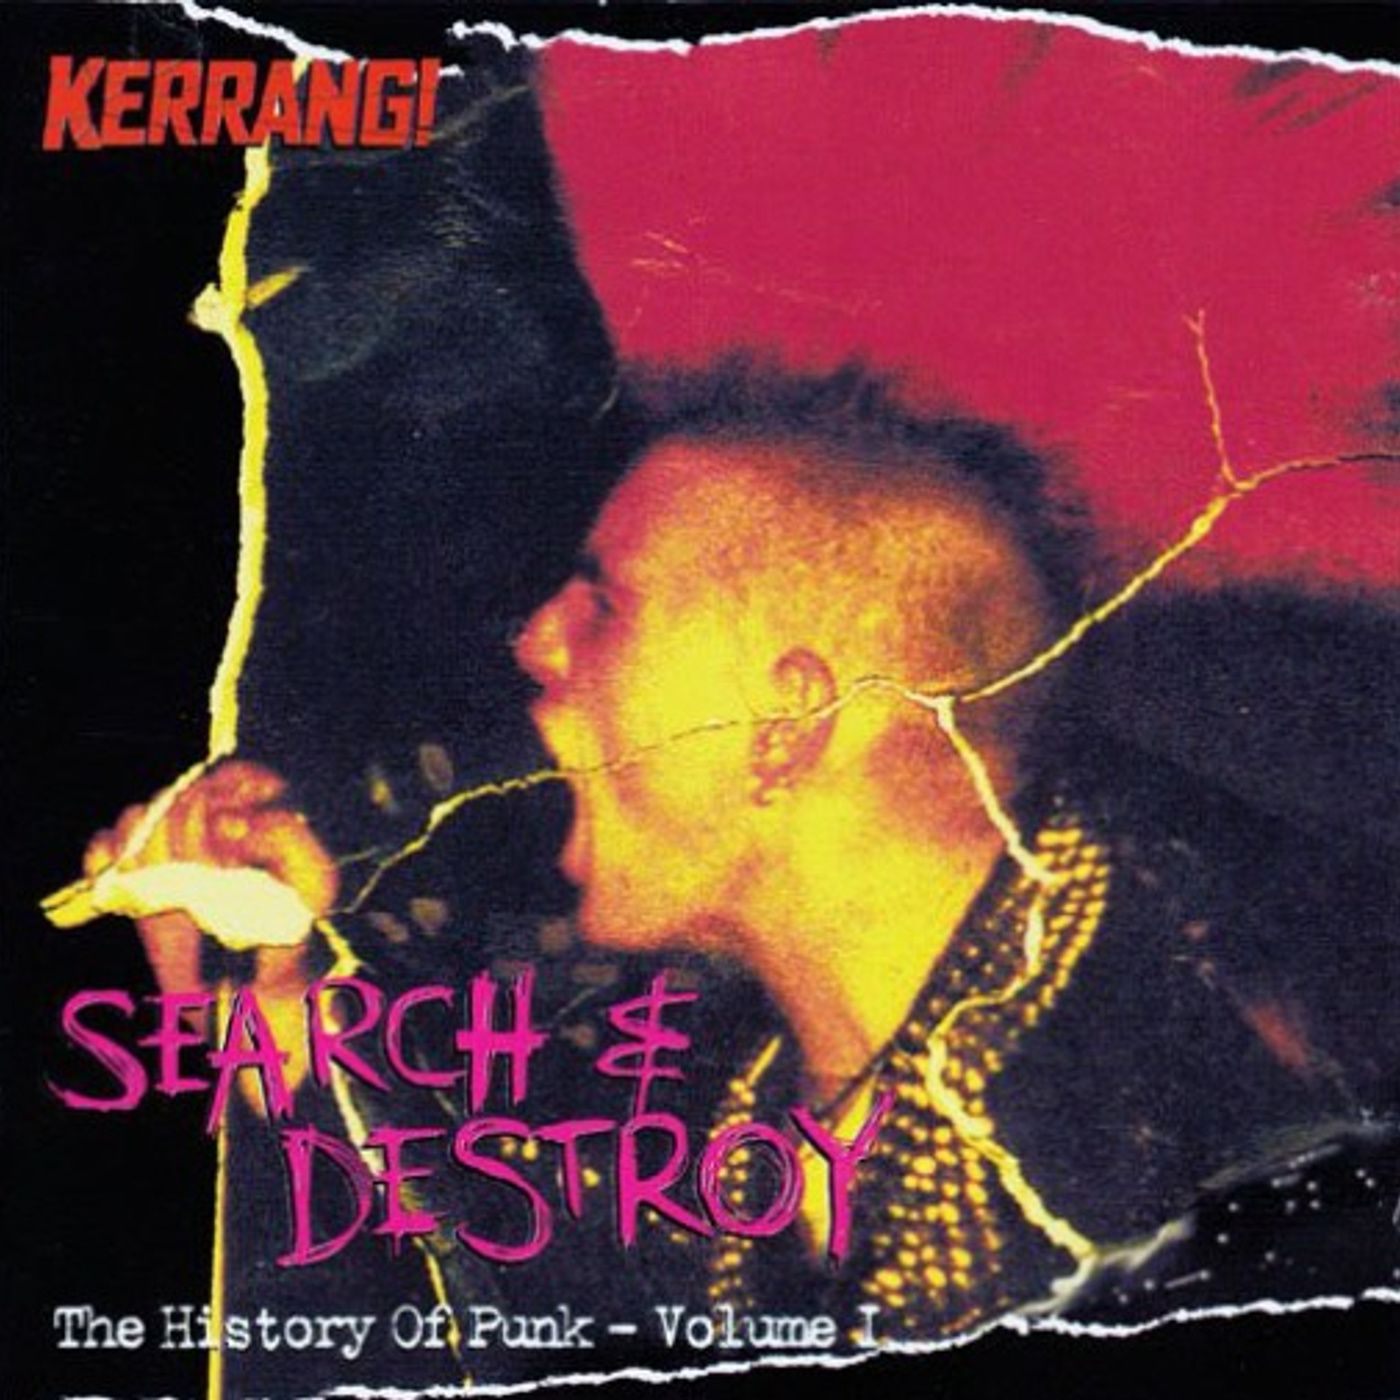 Free With This Months Issue 12 - Alex Claridge selects Kerrang - Search & Destroy: The History Of Punk Volume 1